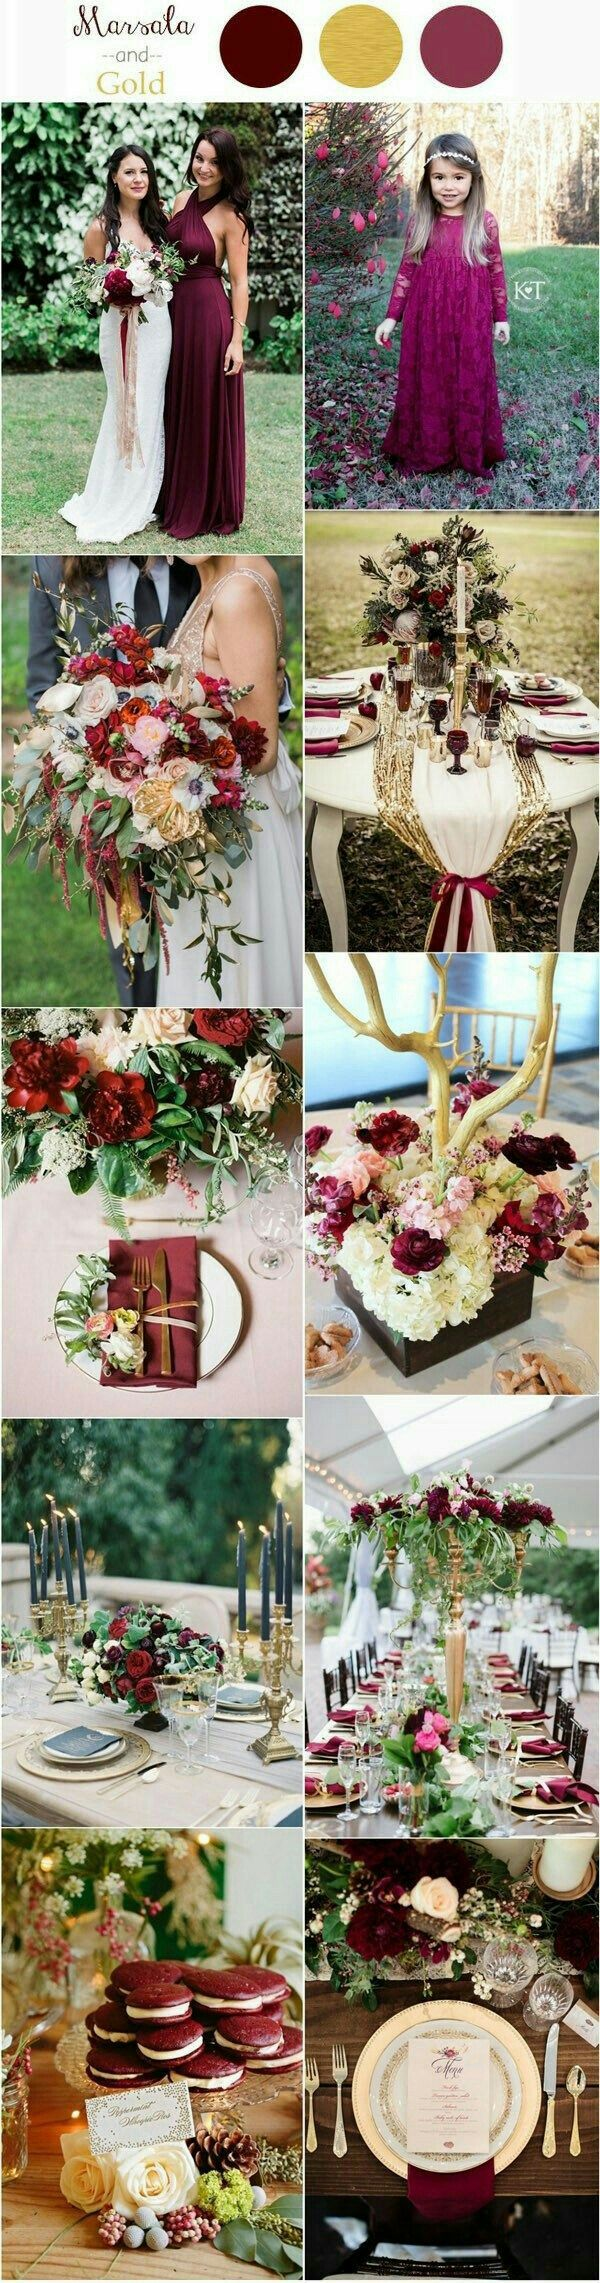 Wedding decorations theme october 2018 Pin by Antoinette Mosely on Wedding   Pinterest  Wedding